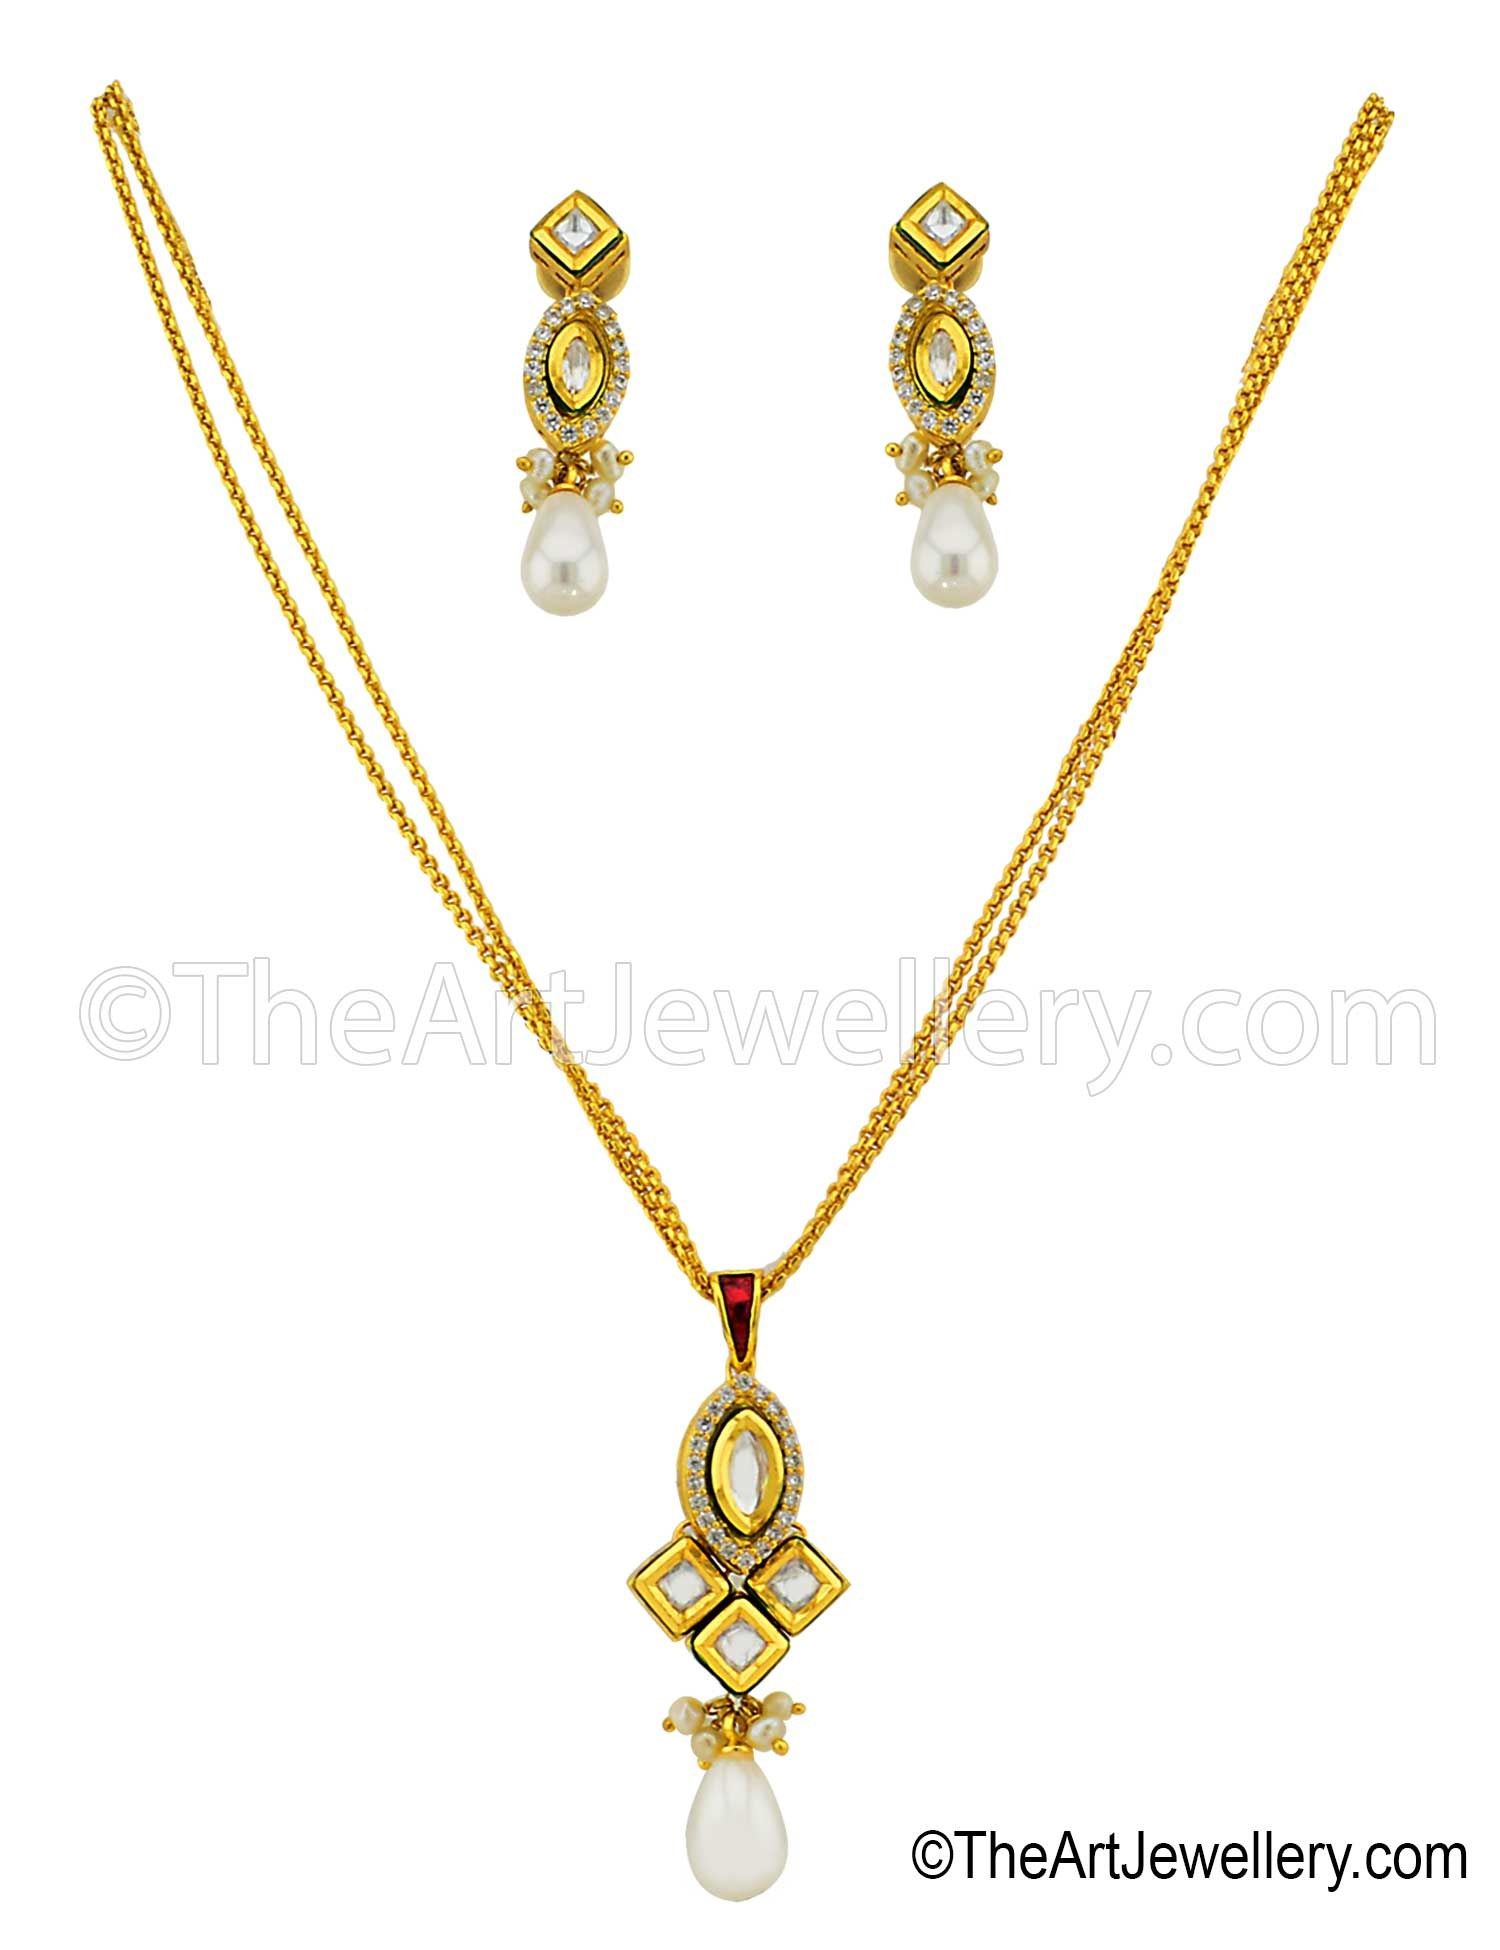 Vilandi Pendant Set with AD Fusion work, Pearl Drop pendant & Golden Chain   Necklaces by The Art Jewellery available at Craftsvilla for Rs.2999